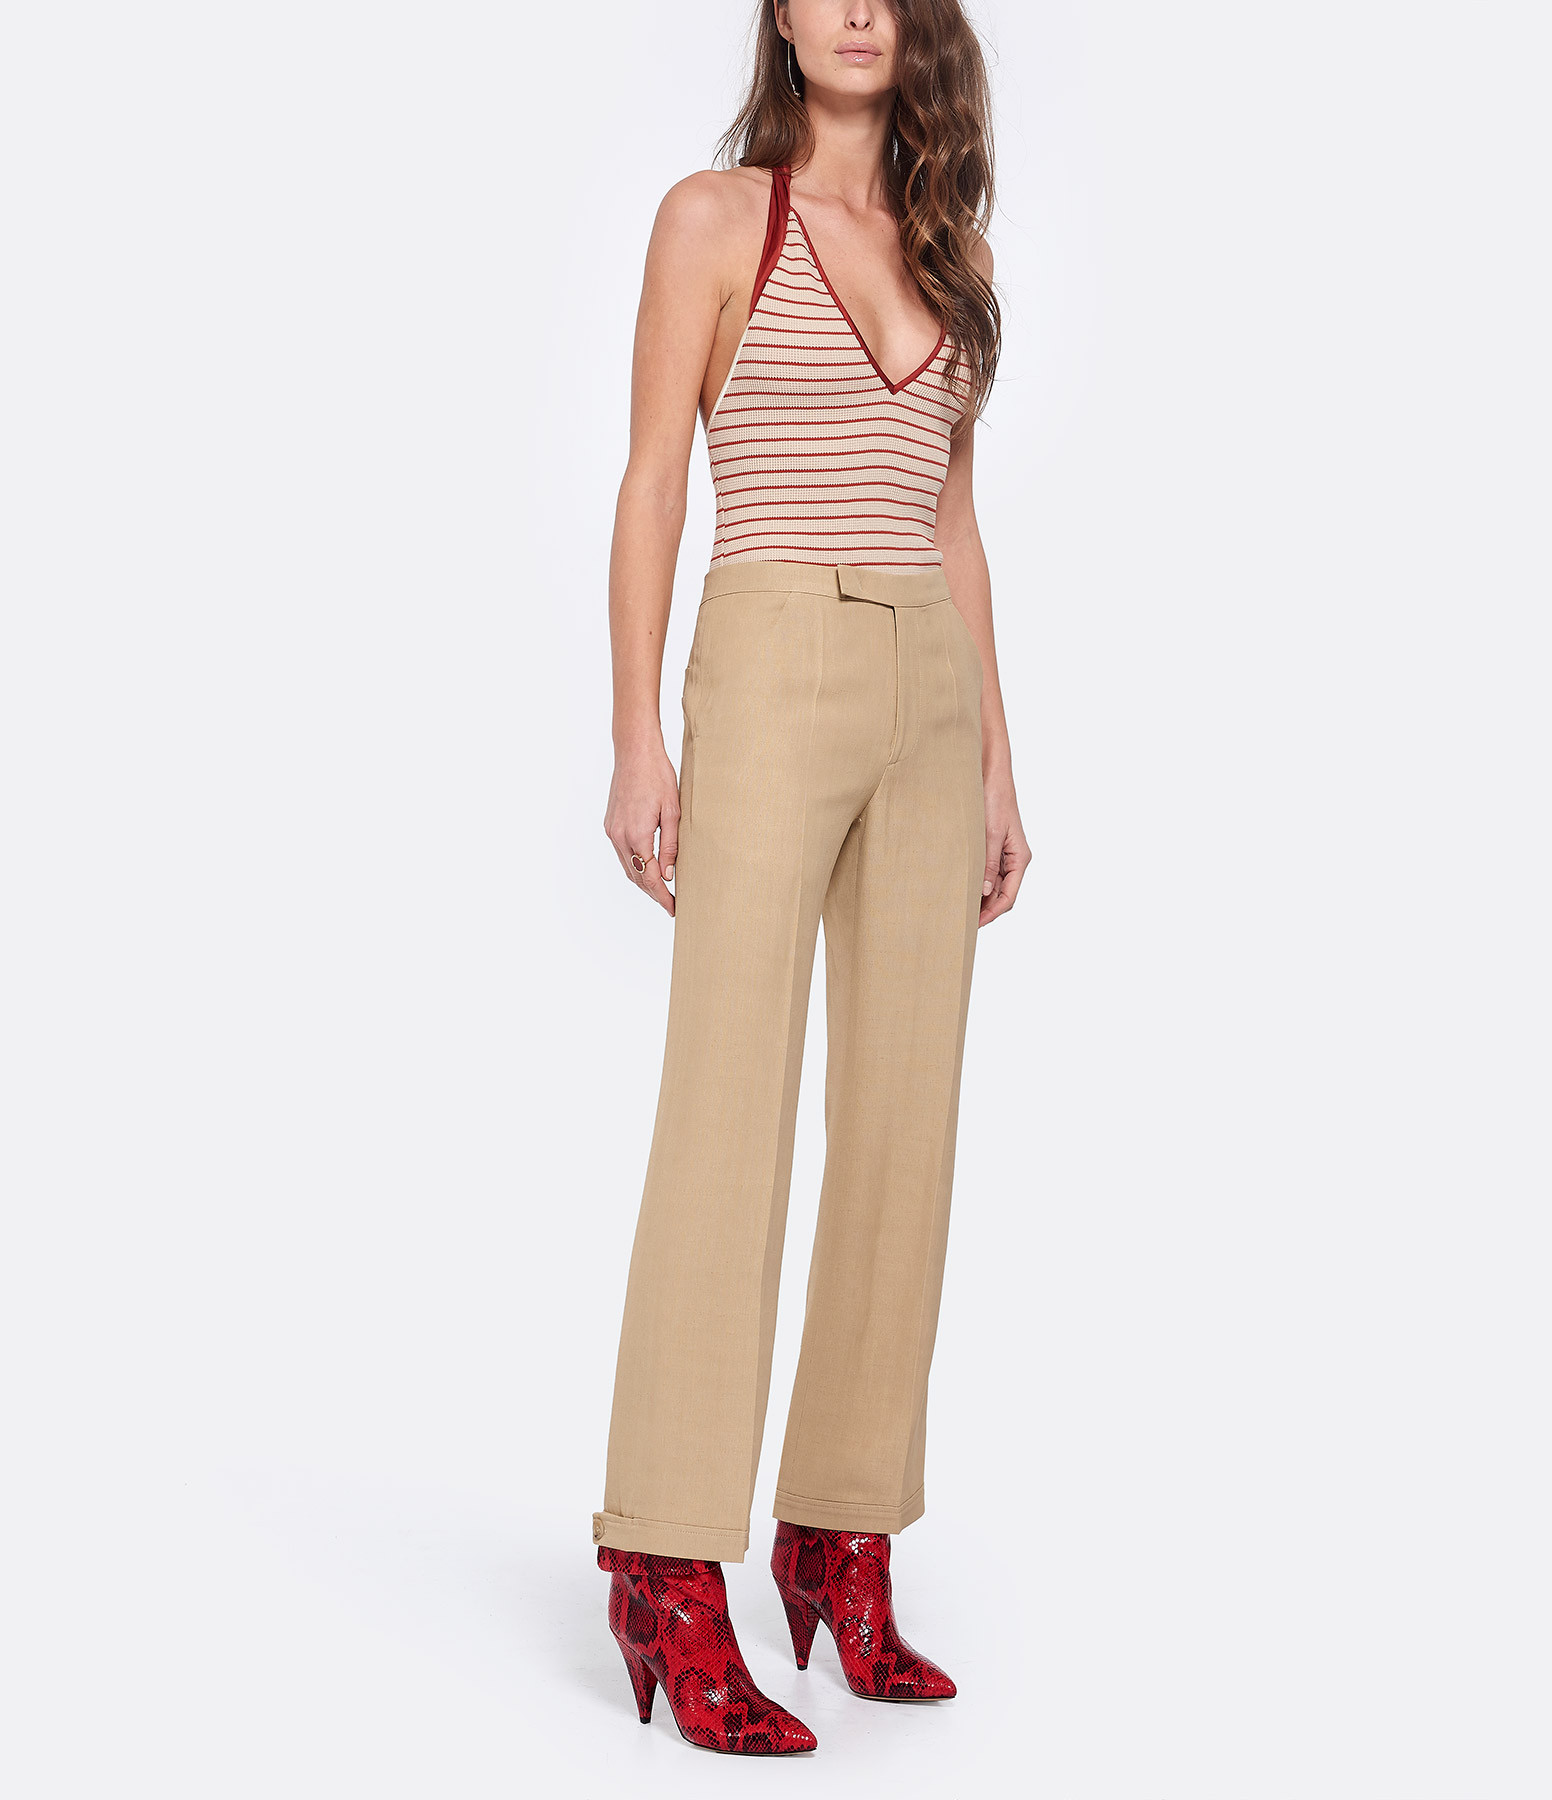 GOLDEN GOOSE - Pantalon Summer Amande